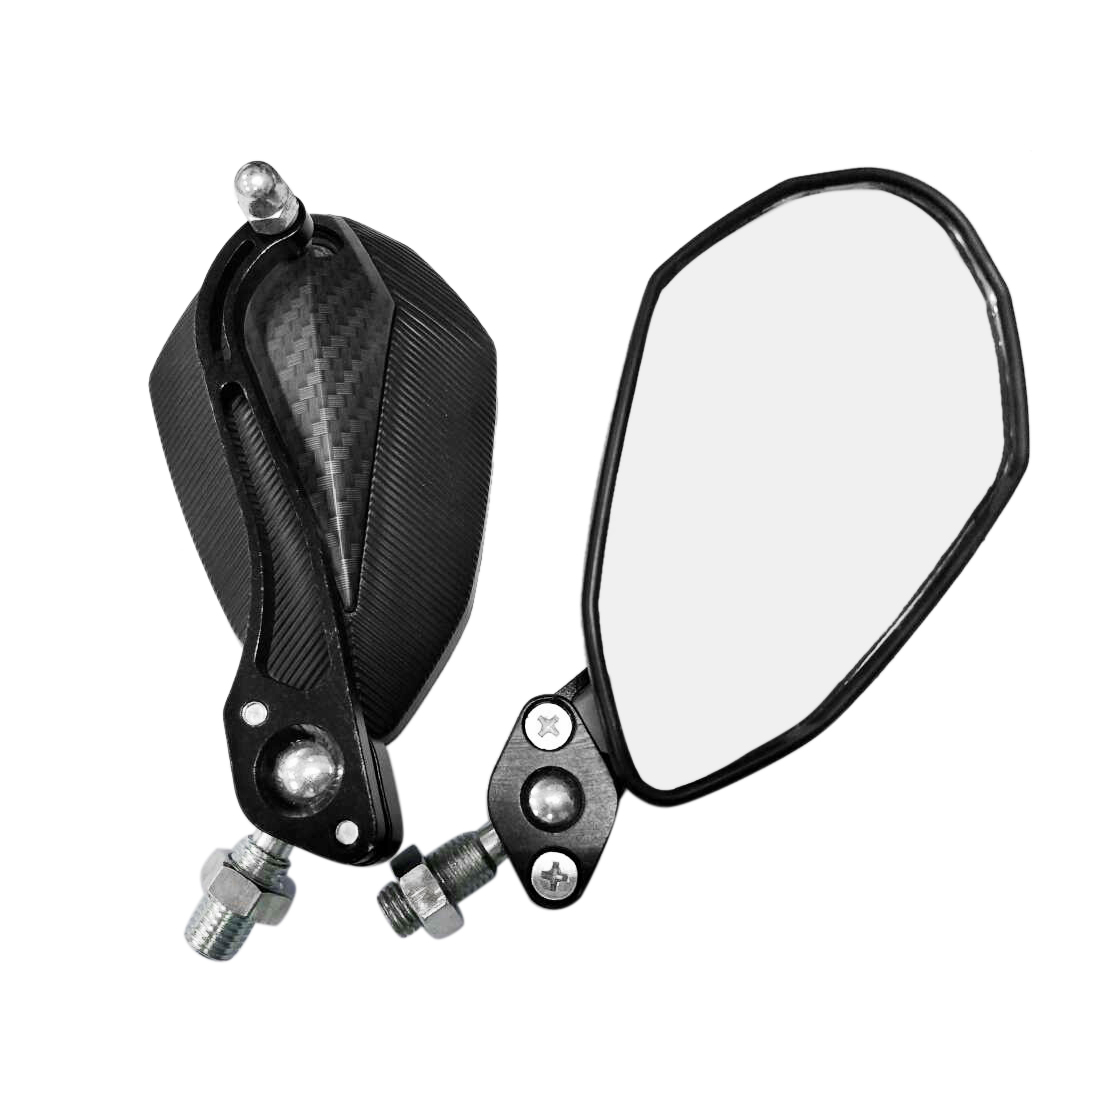 2 Pcs Carbon Fiber Pattern Shell Wide Angle Blind Spot Rearview Mirror for Motorcycle